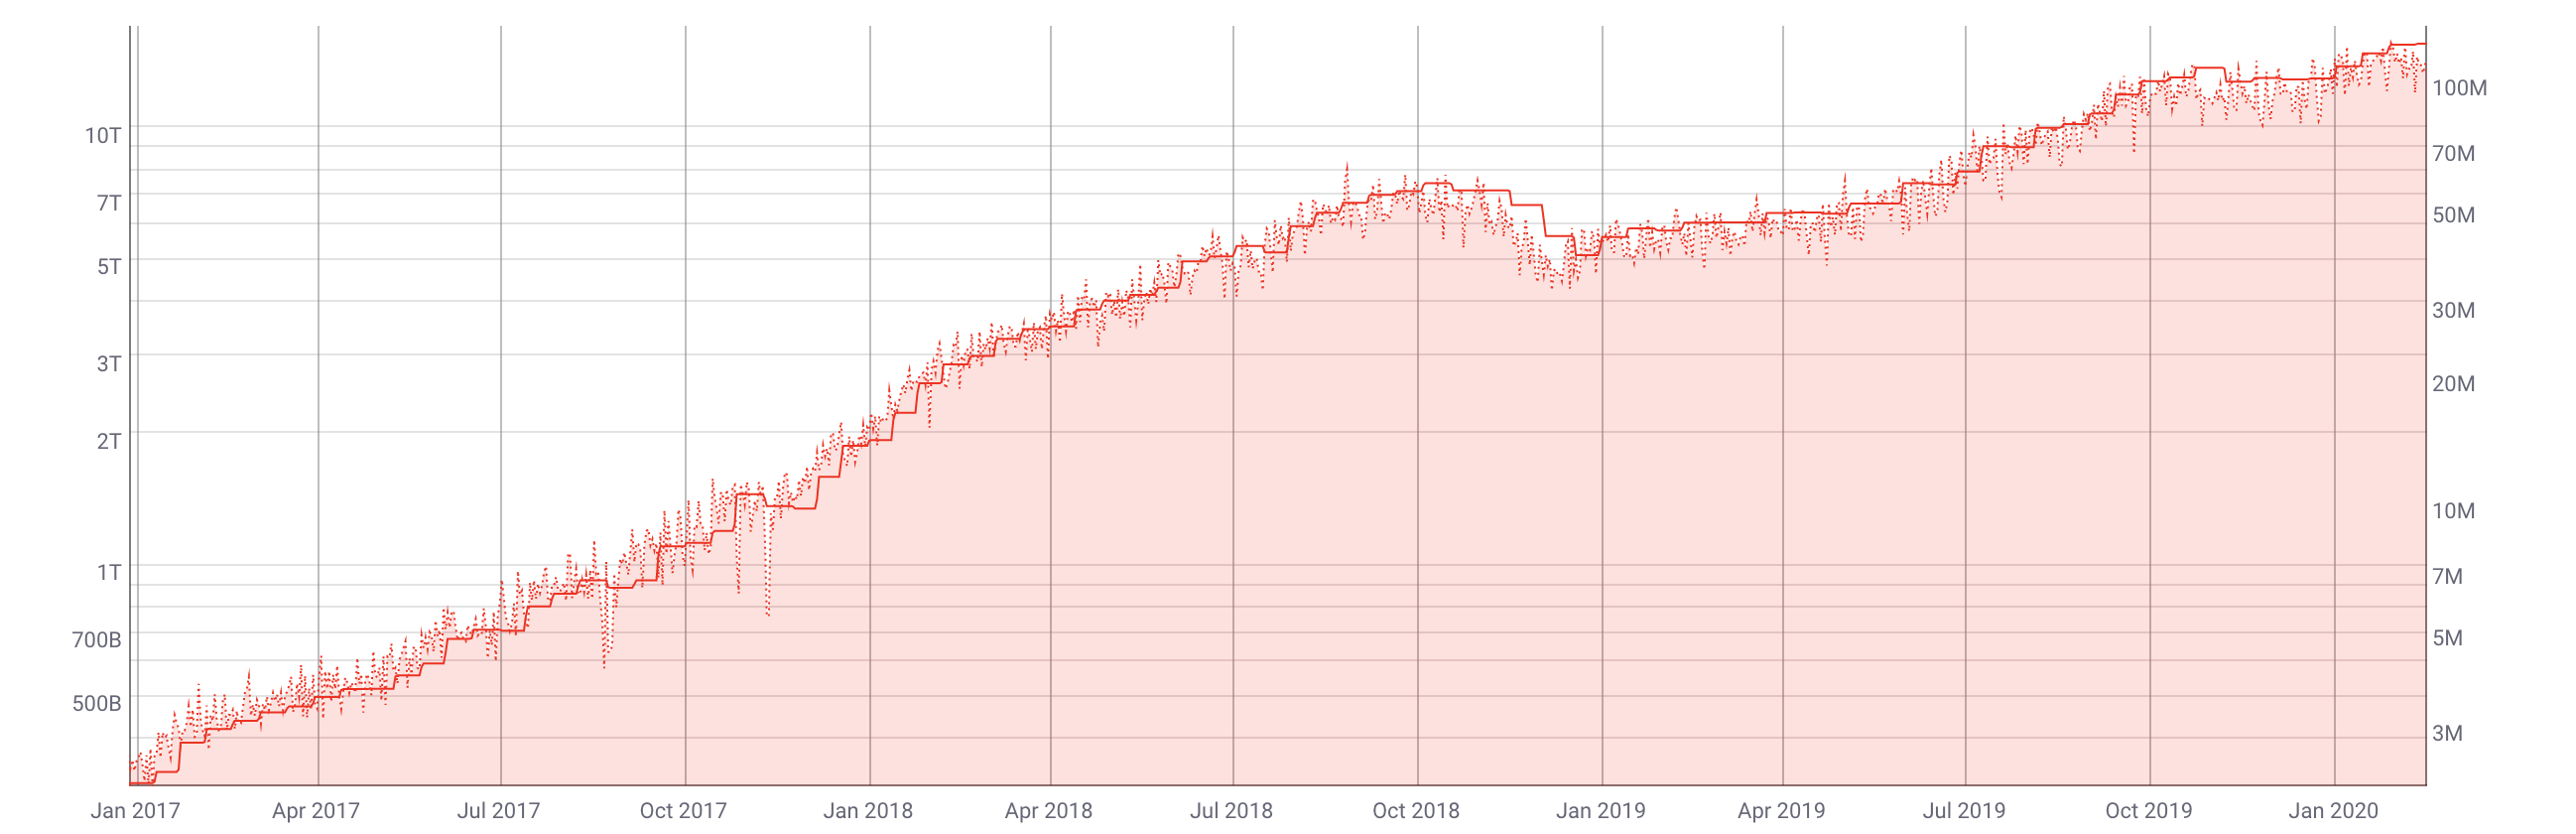 halving-difficulty-hashrate.png